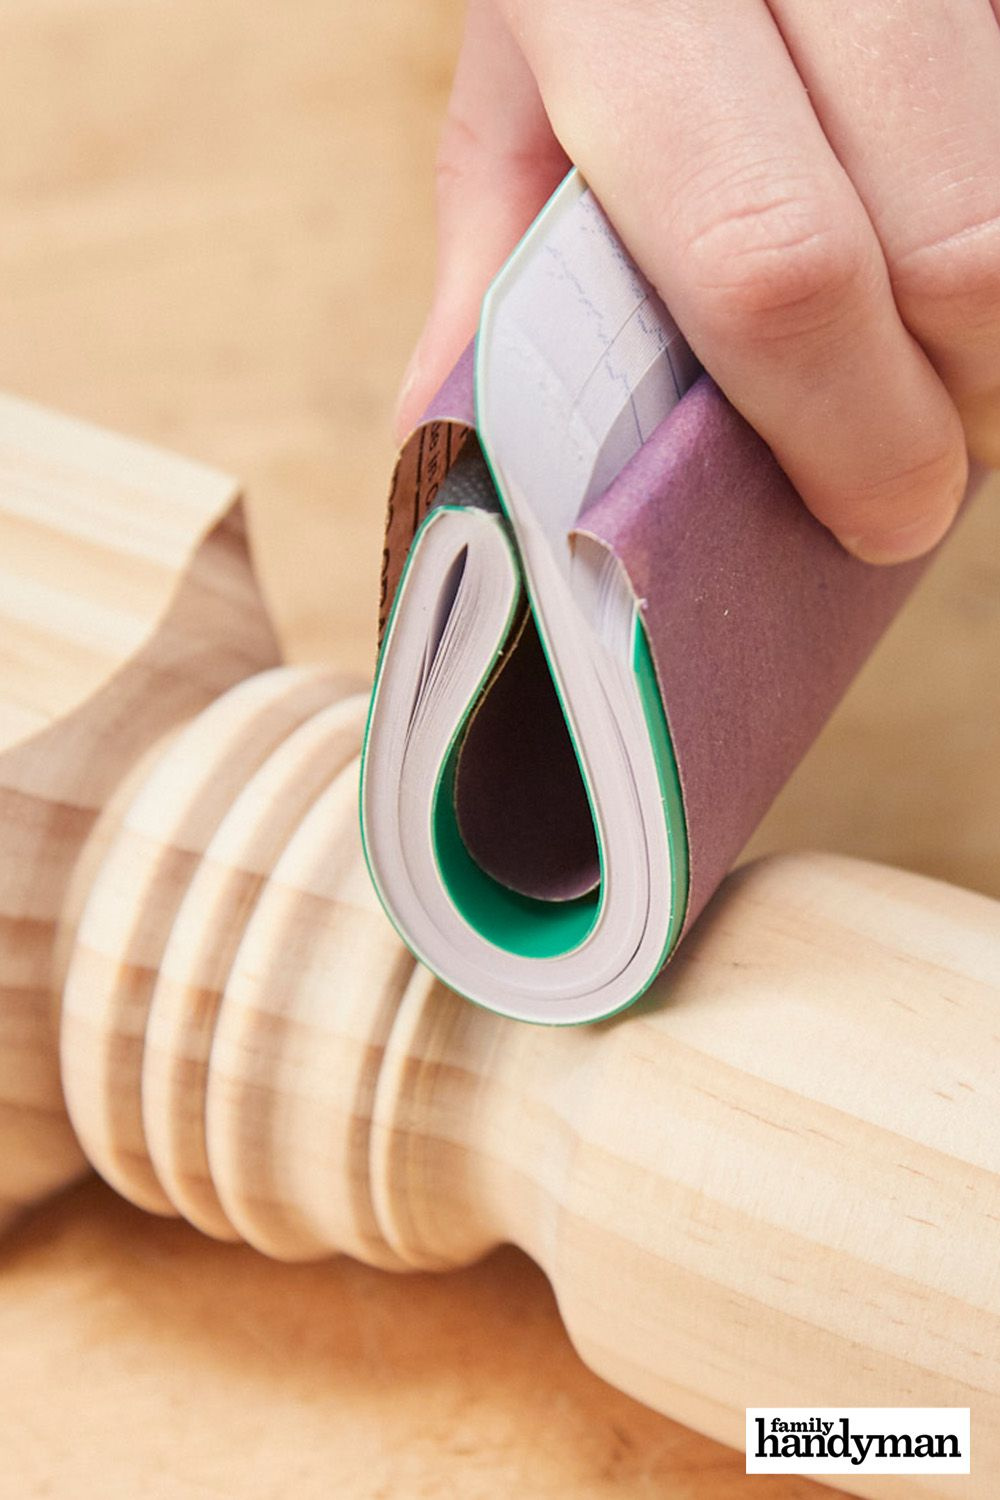 56 Brilliant Woodworking Tips For Beginners In 2020 Woodworking Projects Diy Woodworking Tips Woodworking Projects